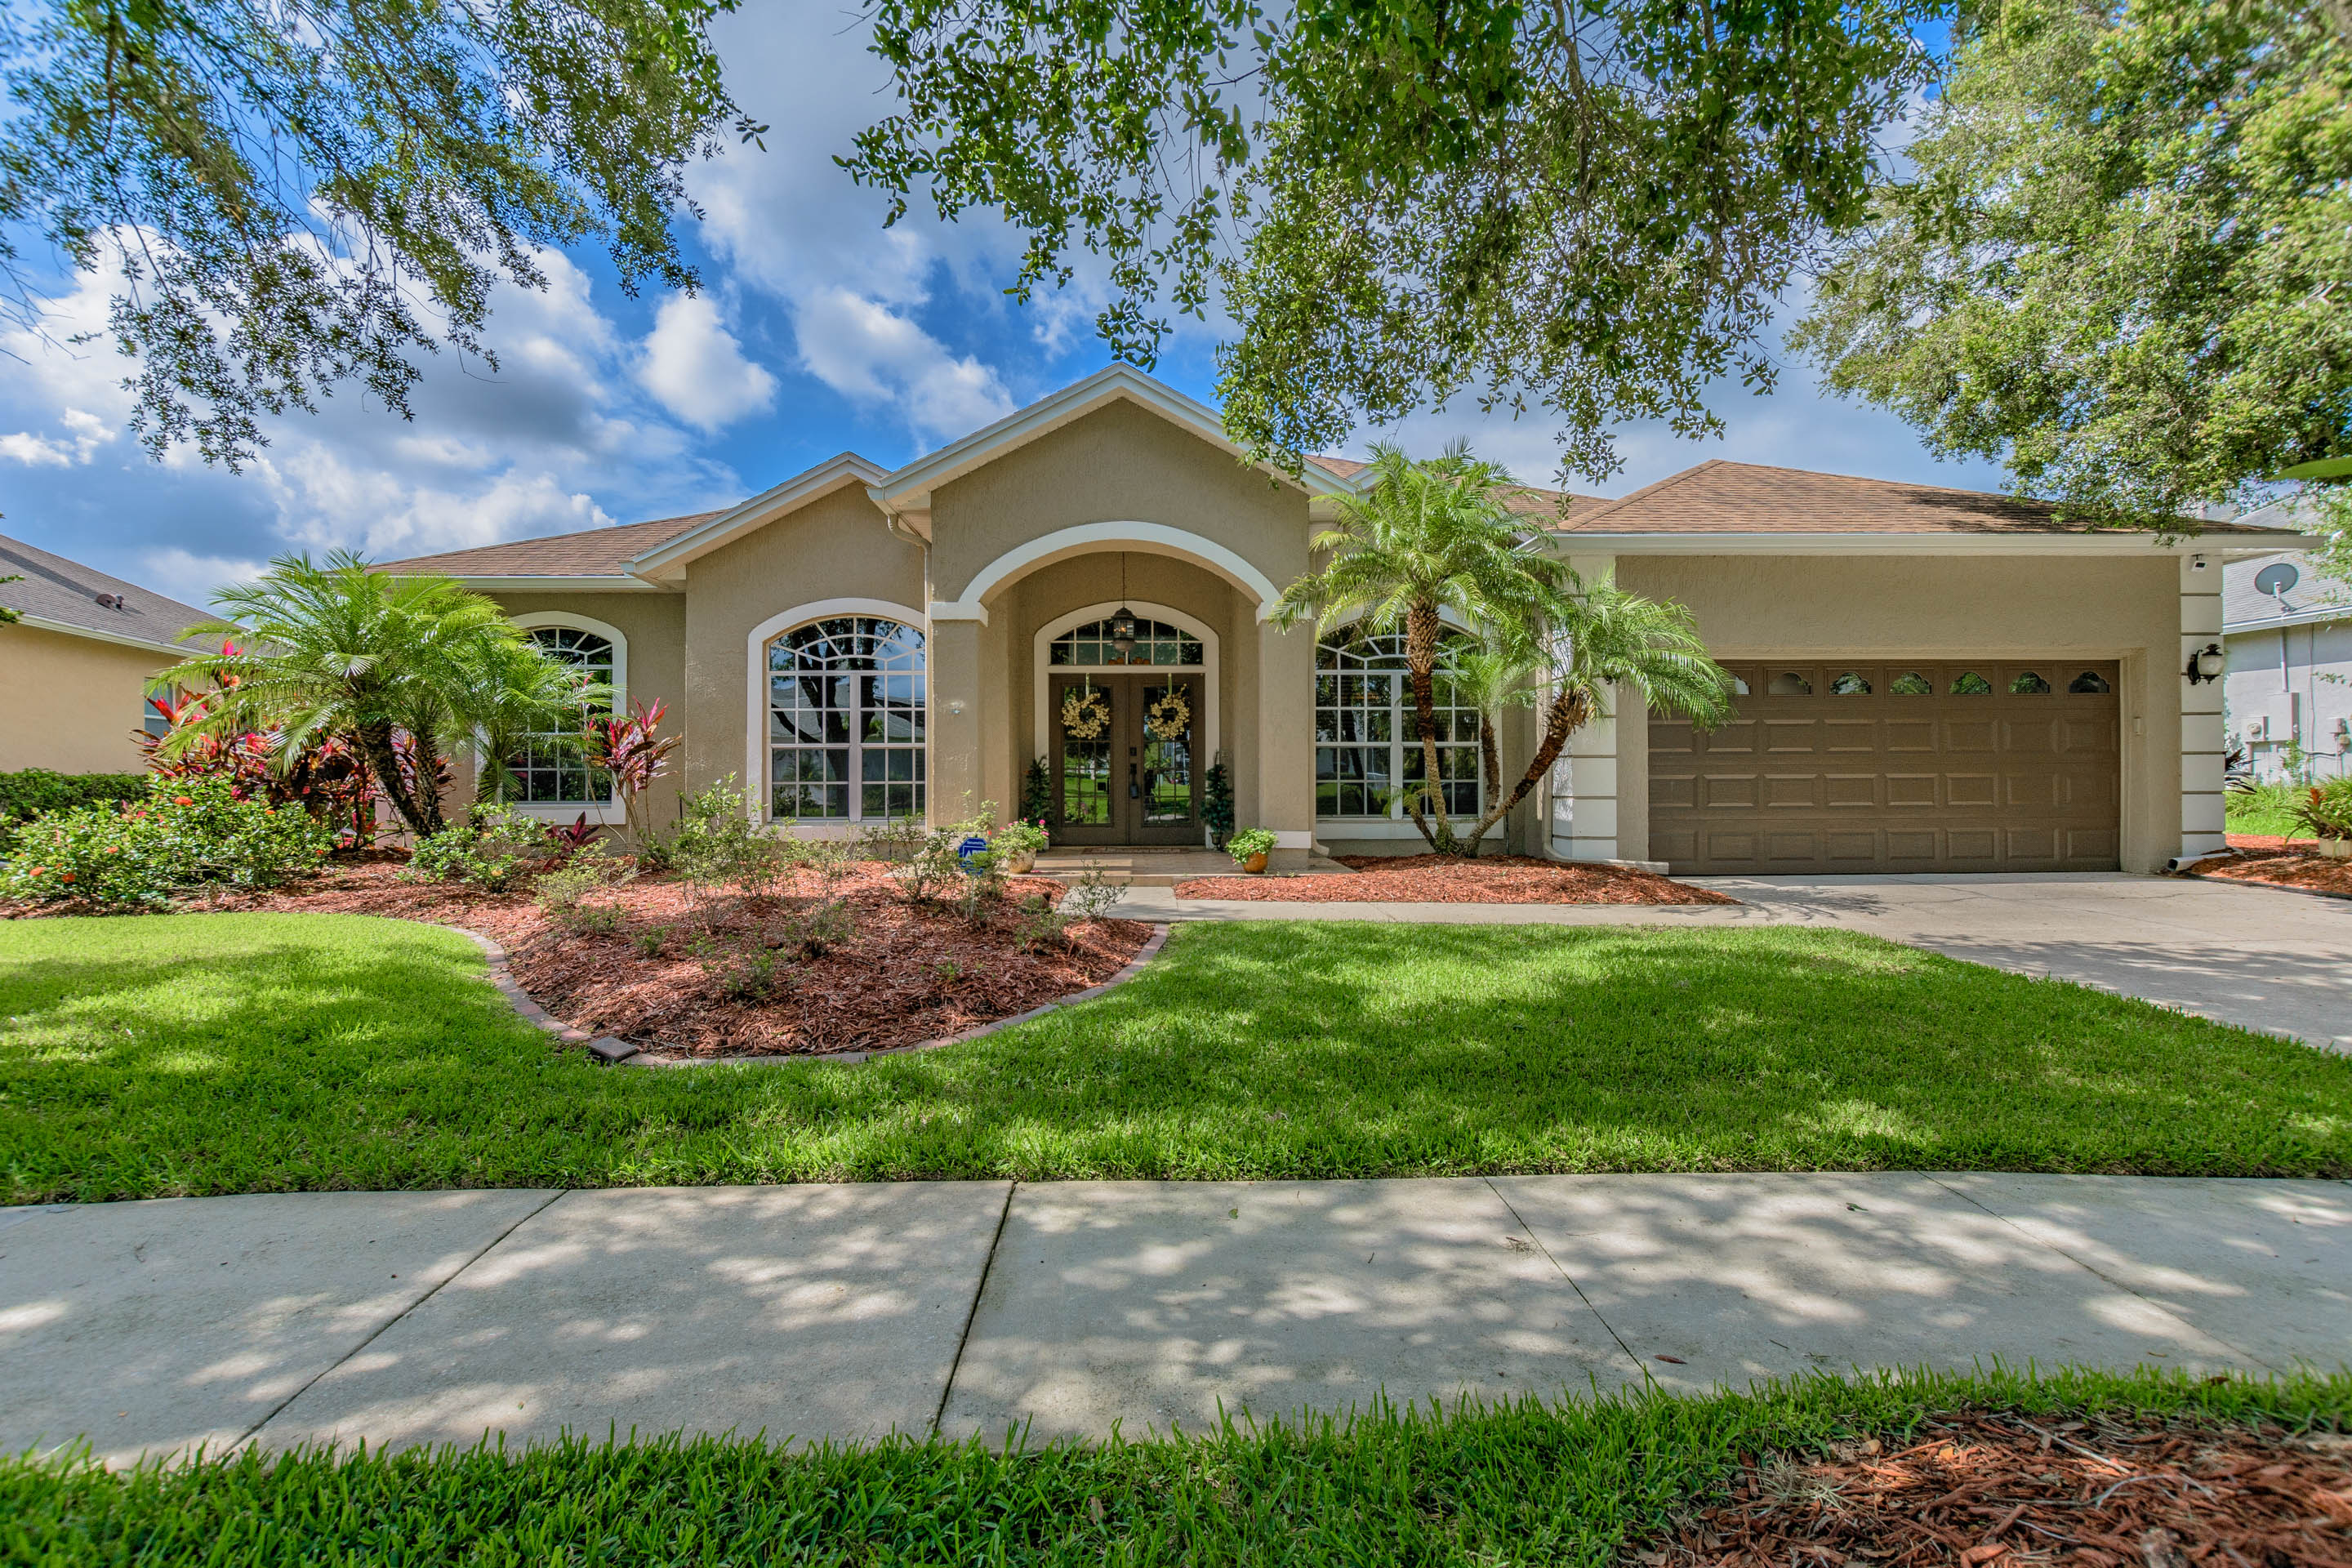 358 fairway pointe cir orlando fl 32828 1 guys for Fairway house